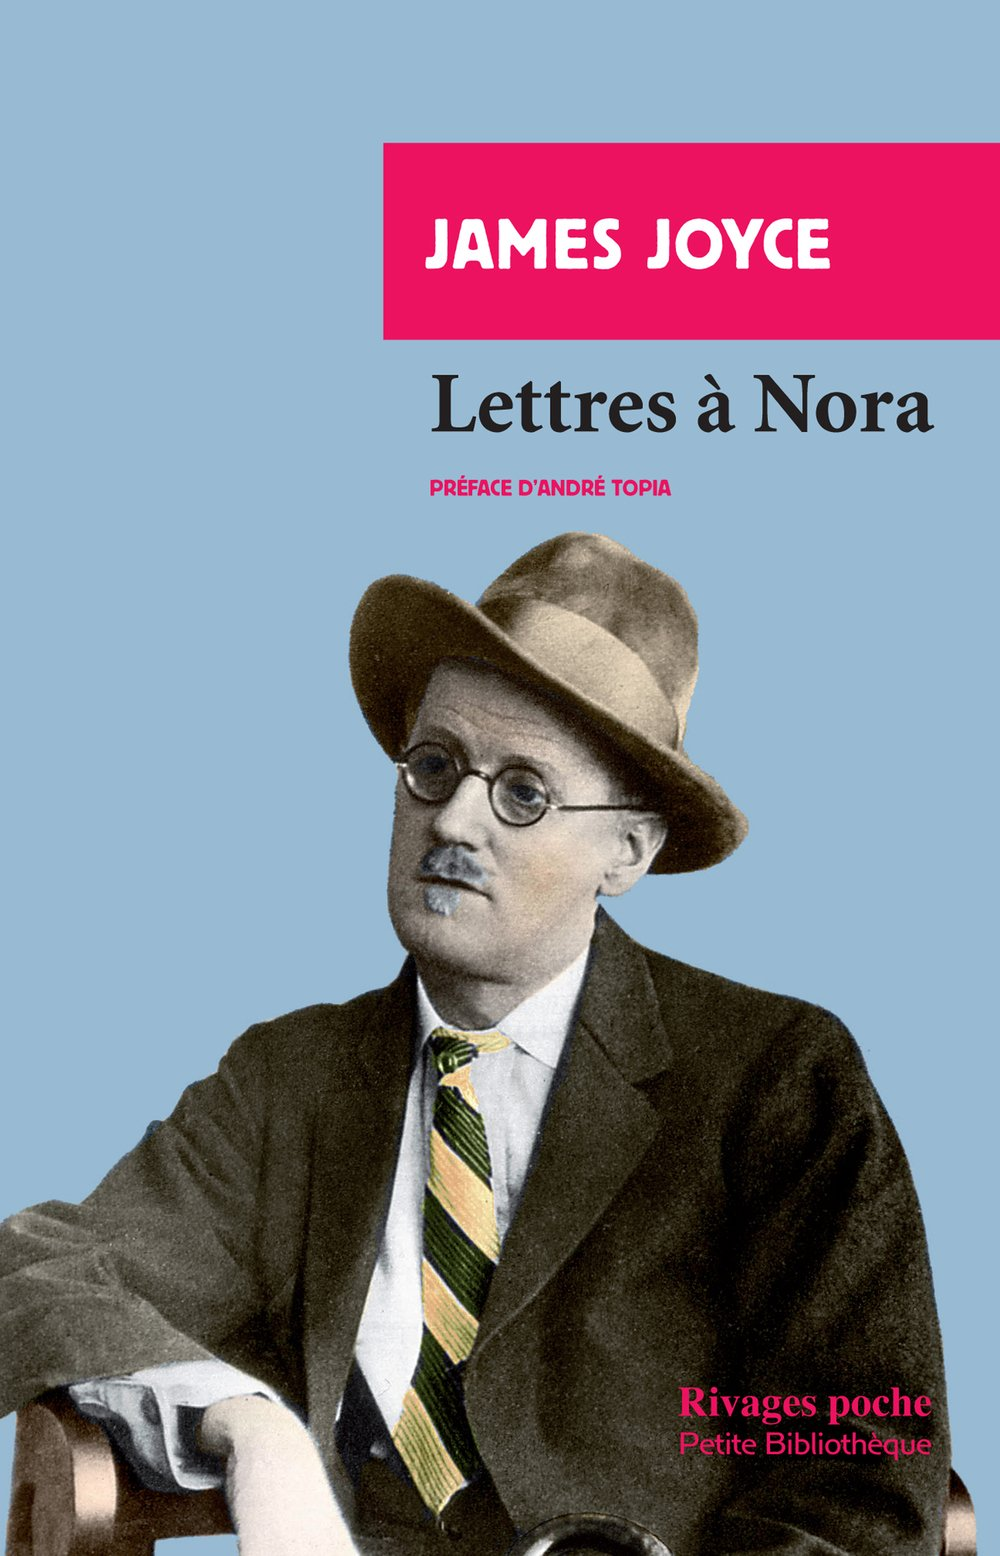 Lettre à Nora - James Joyce